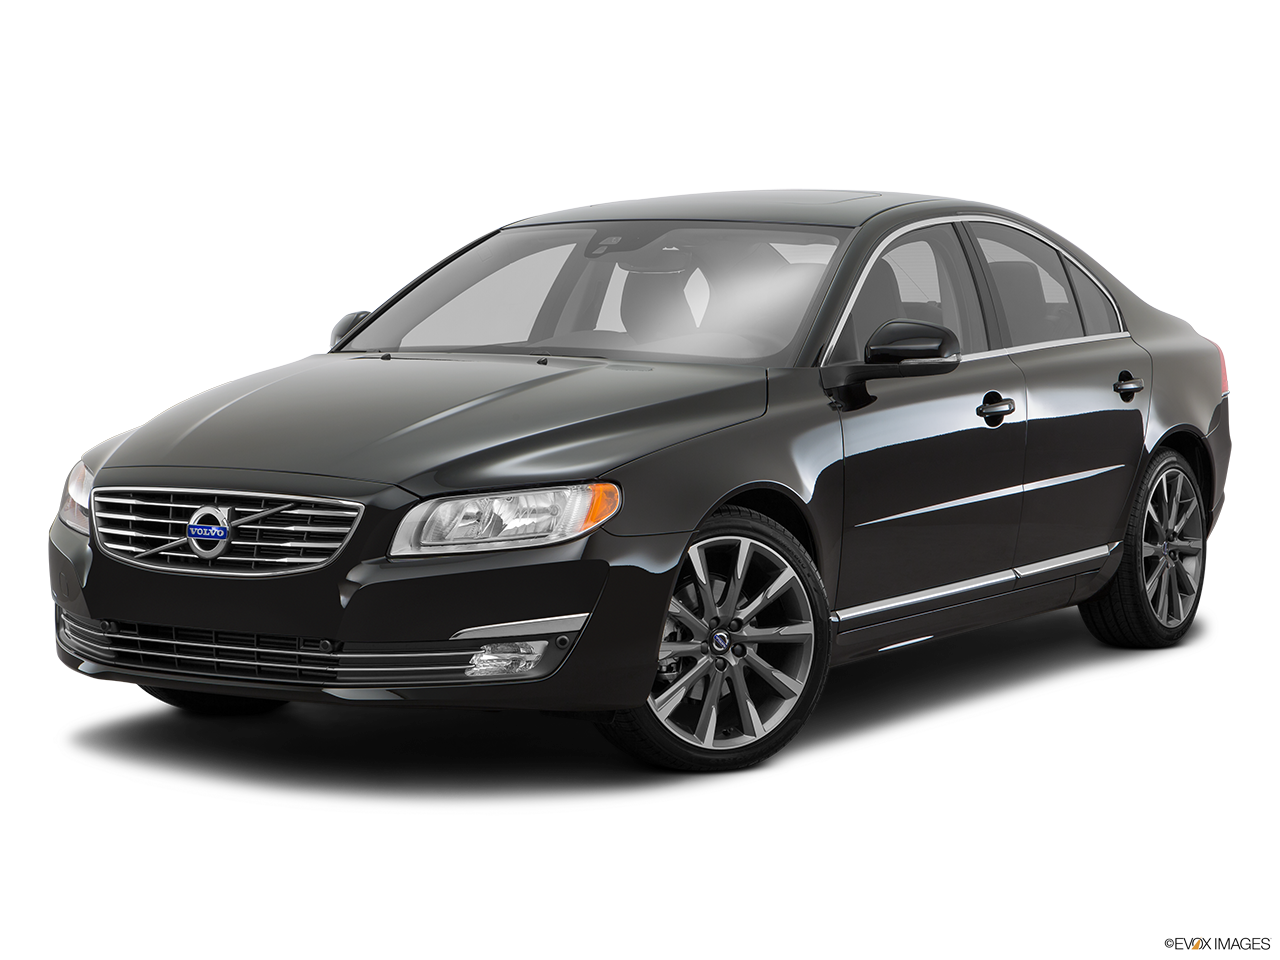 Test Drive A 2016 Volvo S80 at Galpin Volvo in Los Angeles